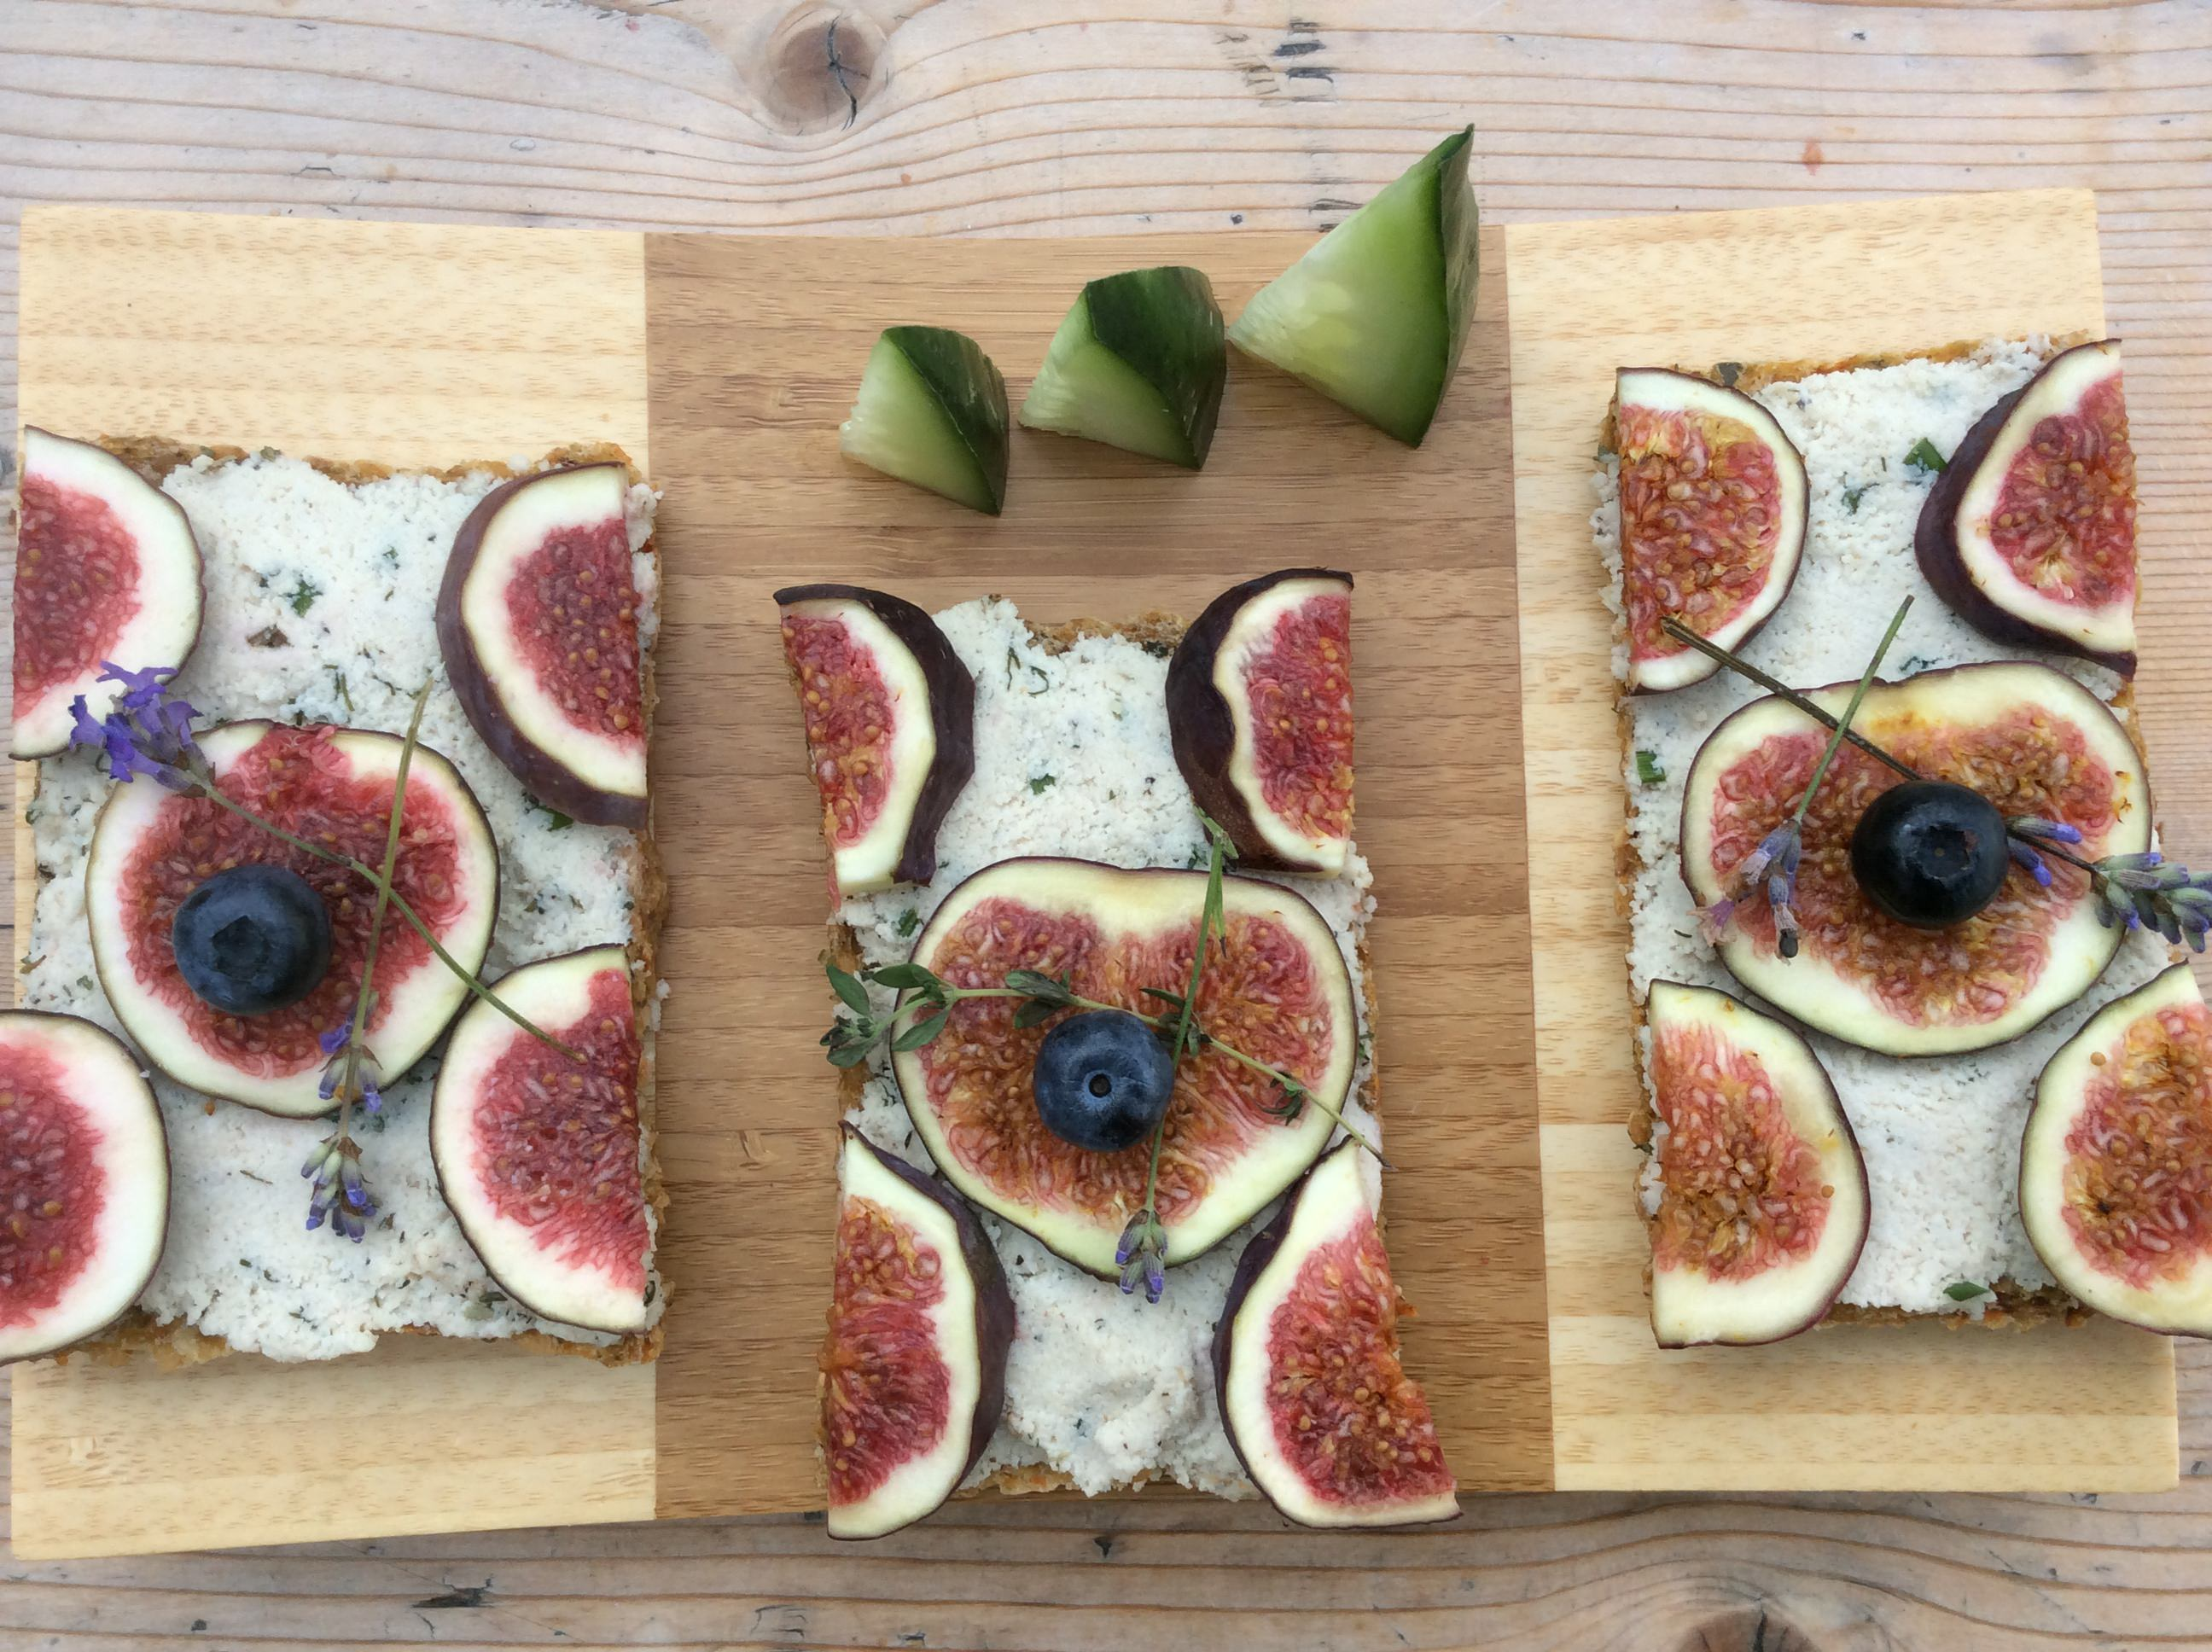 The truth about figs will make you never want to eat one again (seriously, WTF)